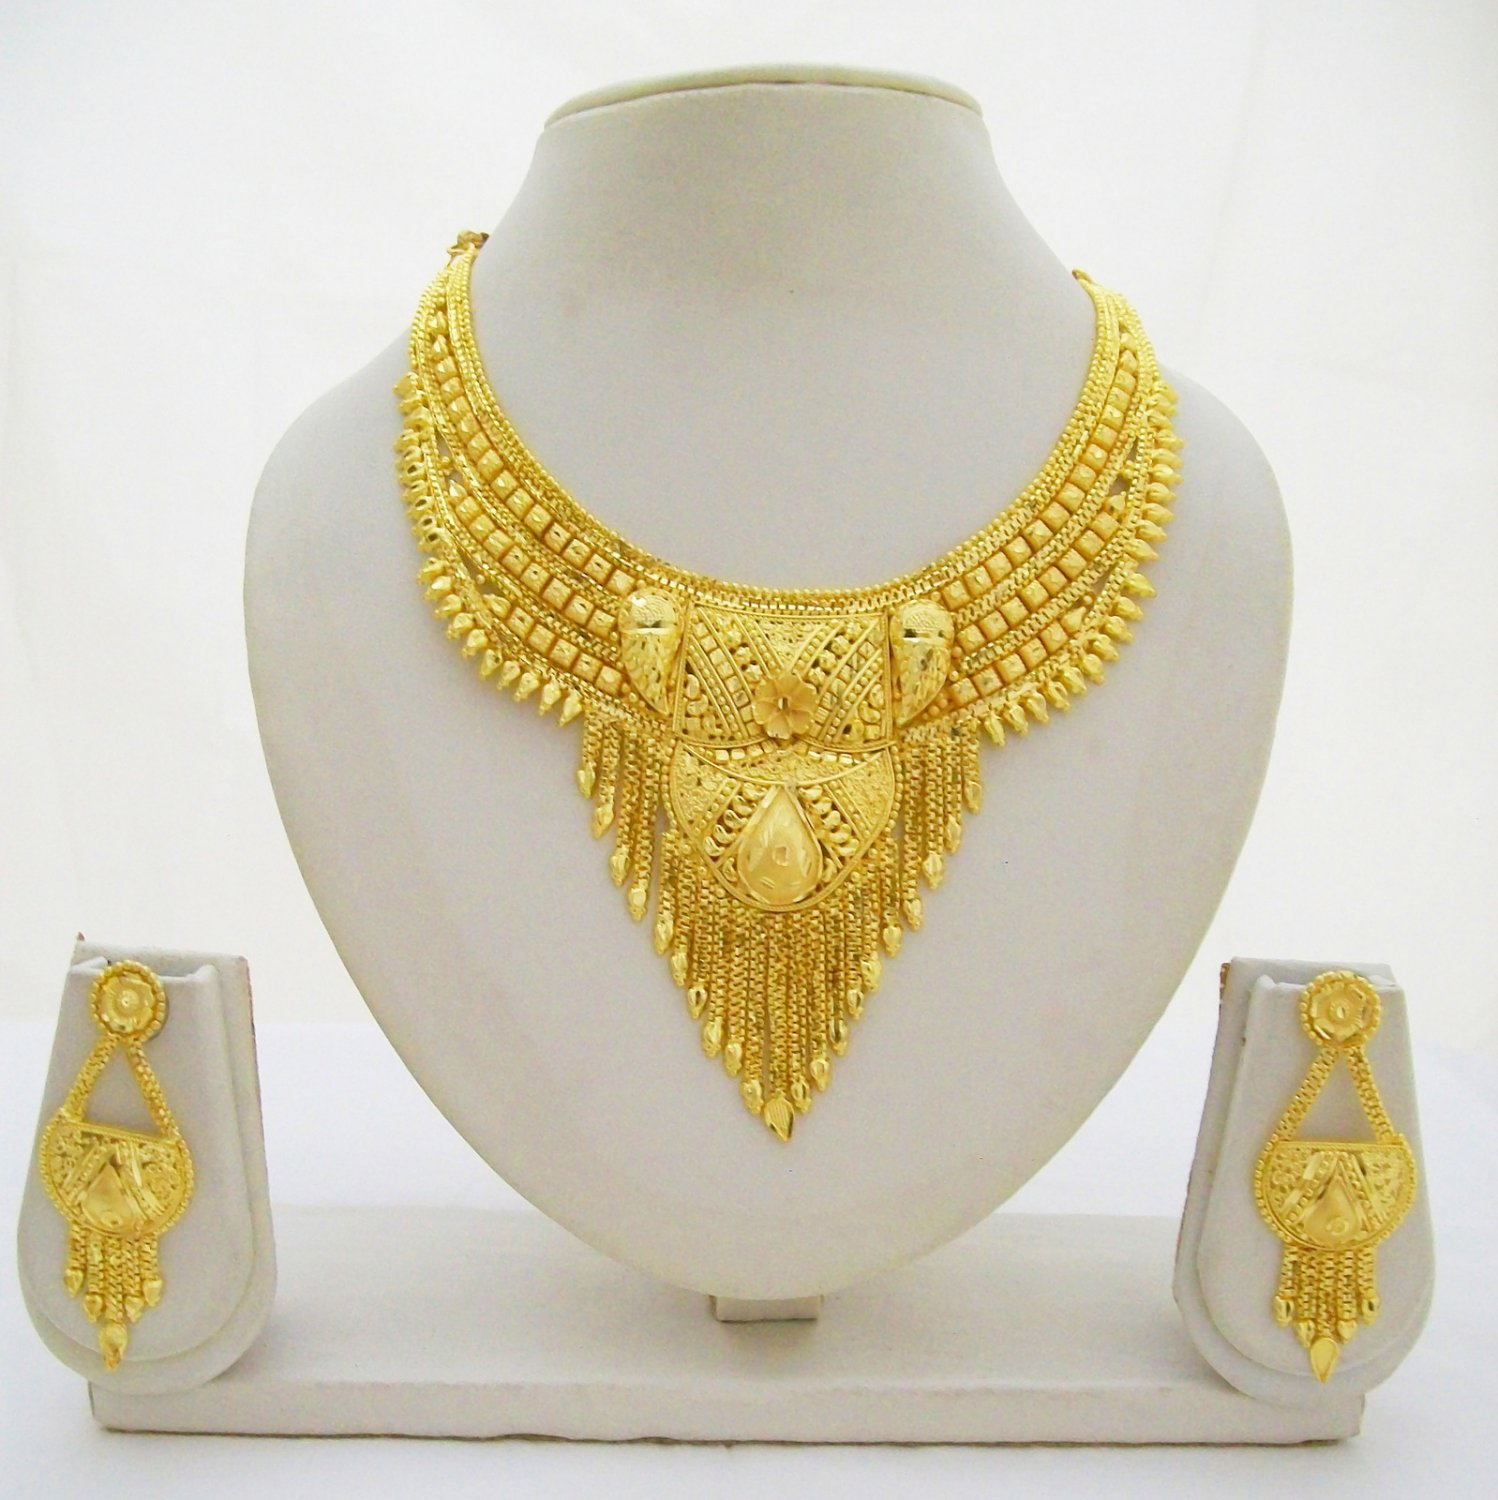 Indian Gold Plated Choker Necklace Traditional Bridal: Indian Gold Plated Choker Necklace Jewelry Set Ethnic